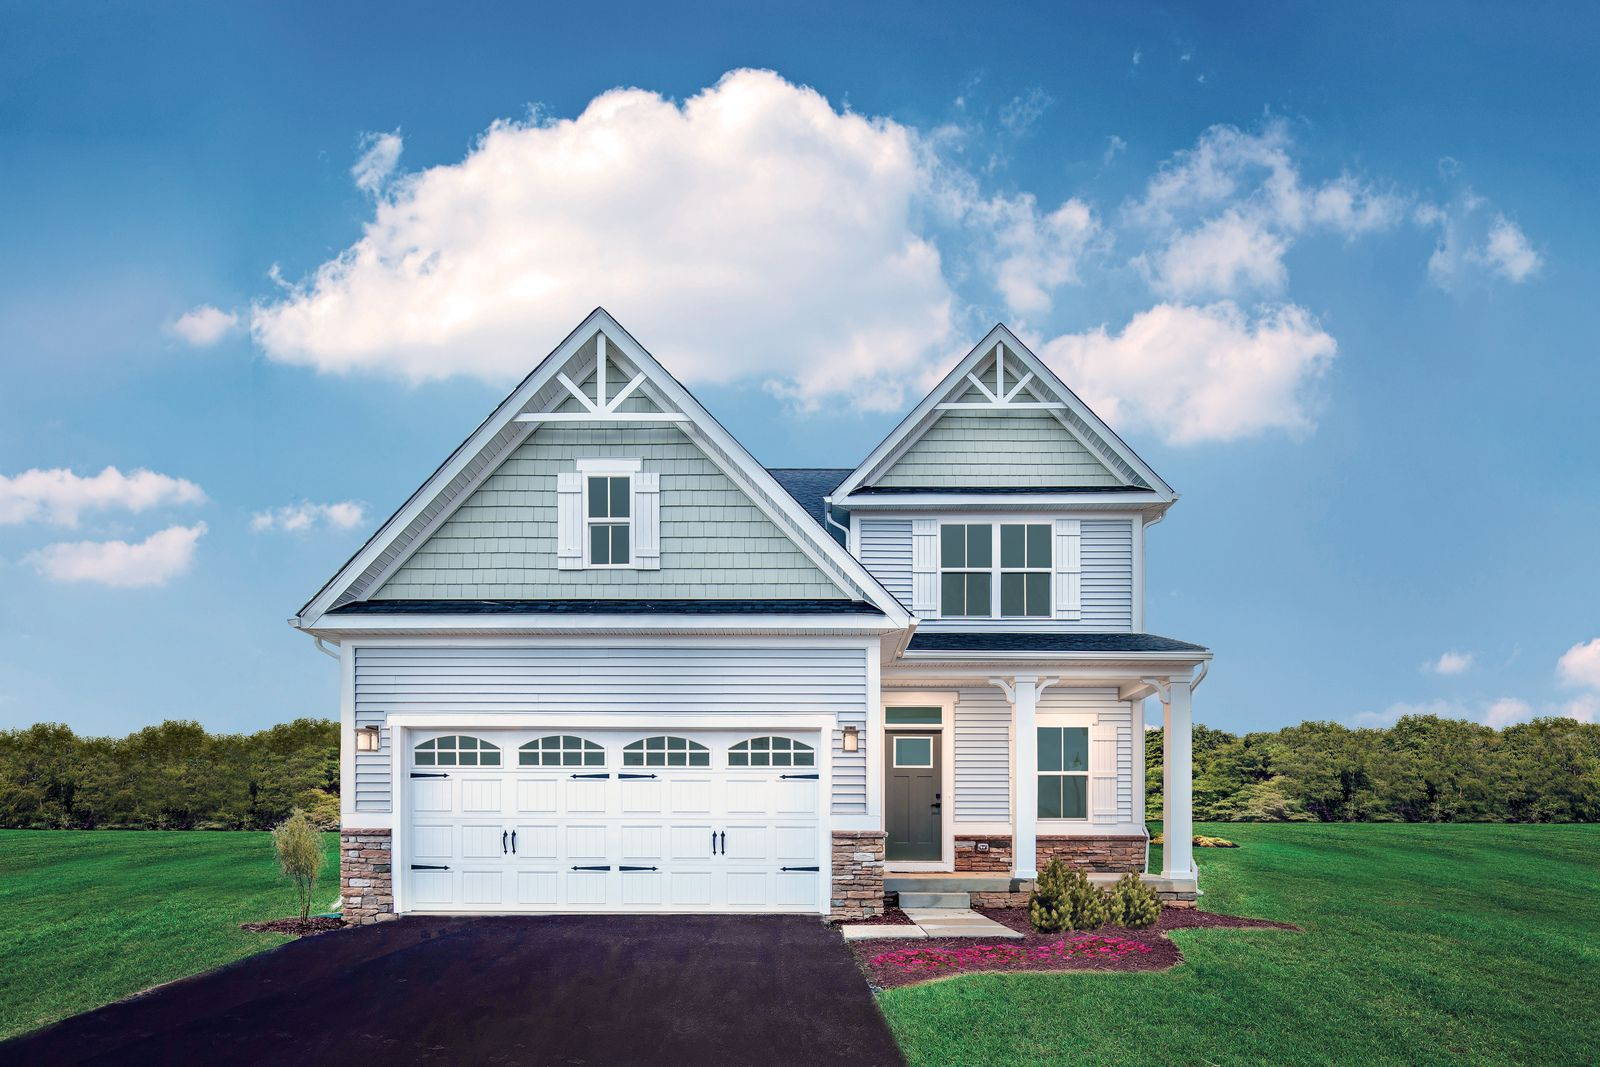 WELCOME TO HANOVER POINTE:The lowest-priced new homes in Boyertown schools that include upscale features from finished basements to quartz countertops, near shopping & Rt. 422.Schedule a visit today!